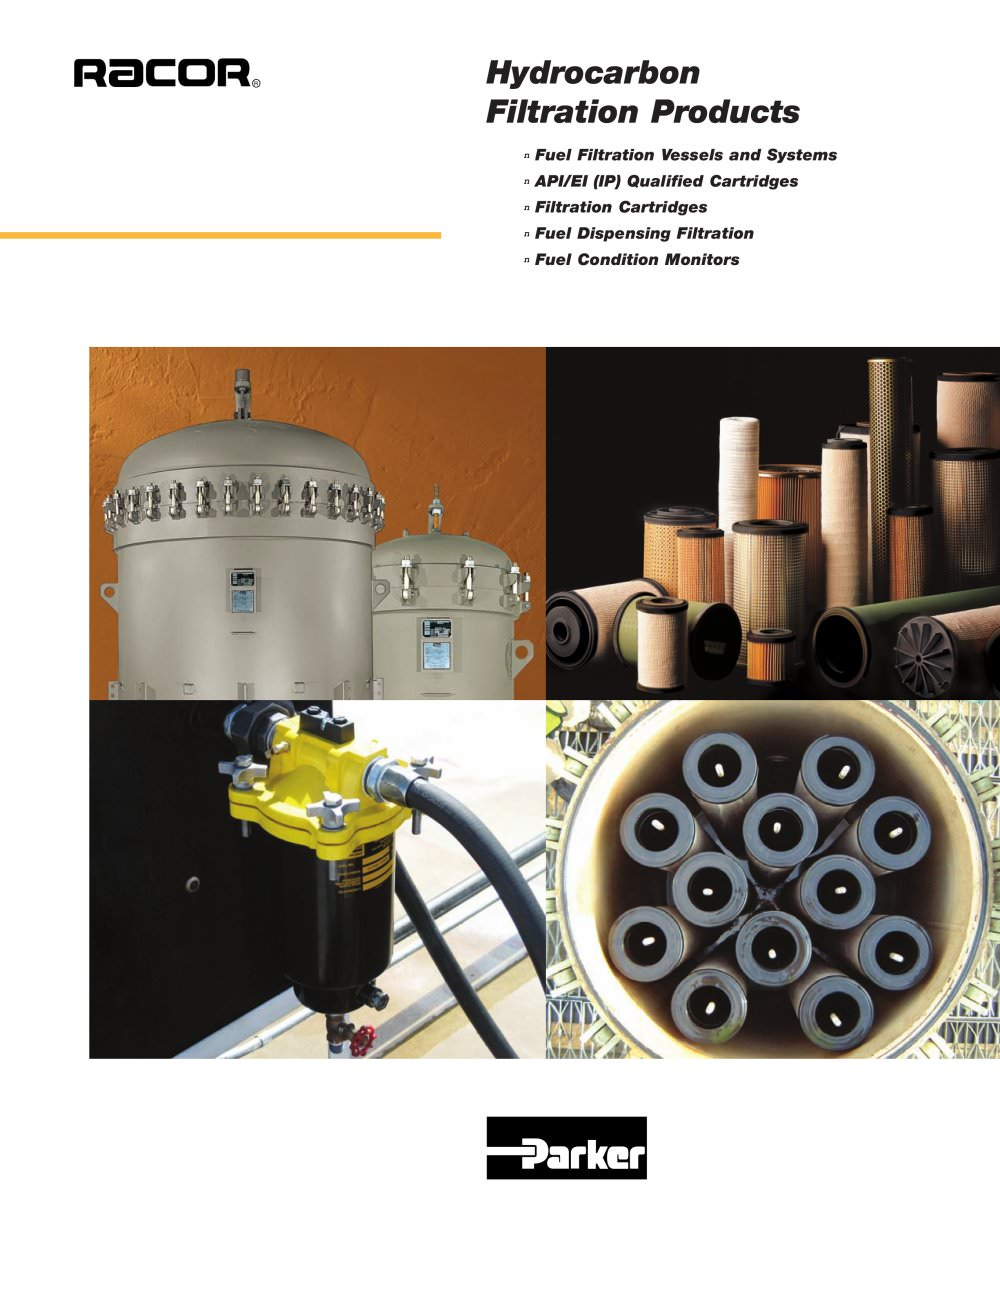 Parker Fuel Filter Eco Glass Iii Oil System Wire Hydrocarbon Filtration Products Racor Division Pdf 1 24